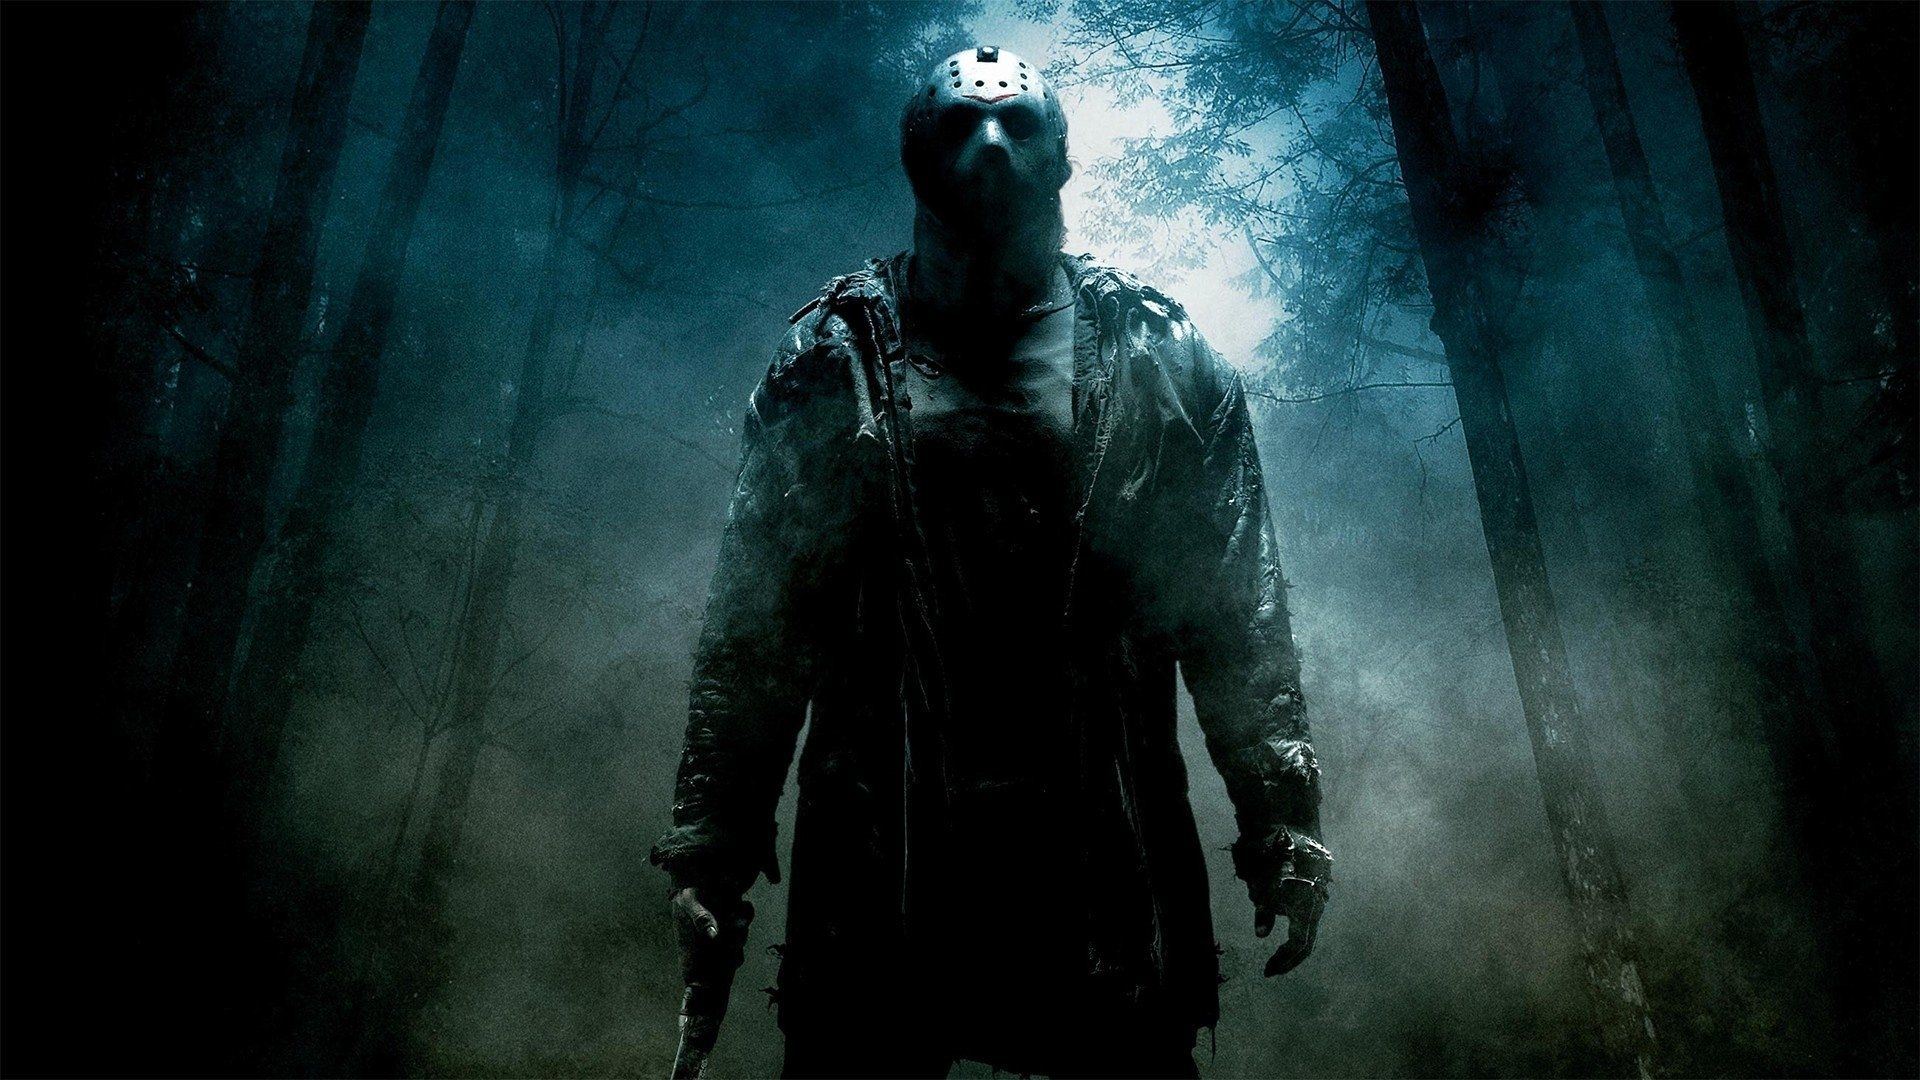 10 Best Friday The 13th Wallpaper Full Hd 1920 1080 For Pc Background Horror Movie Posters Slasher Movies Scary Movies